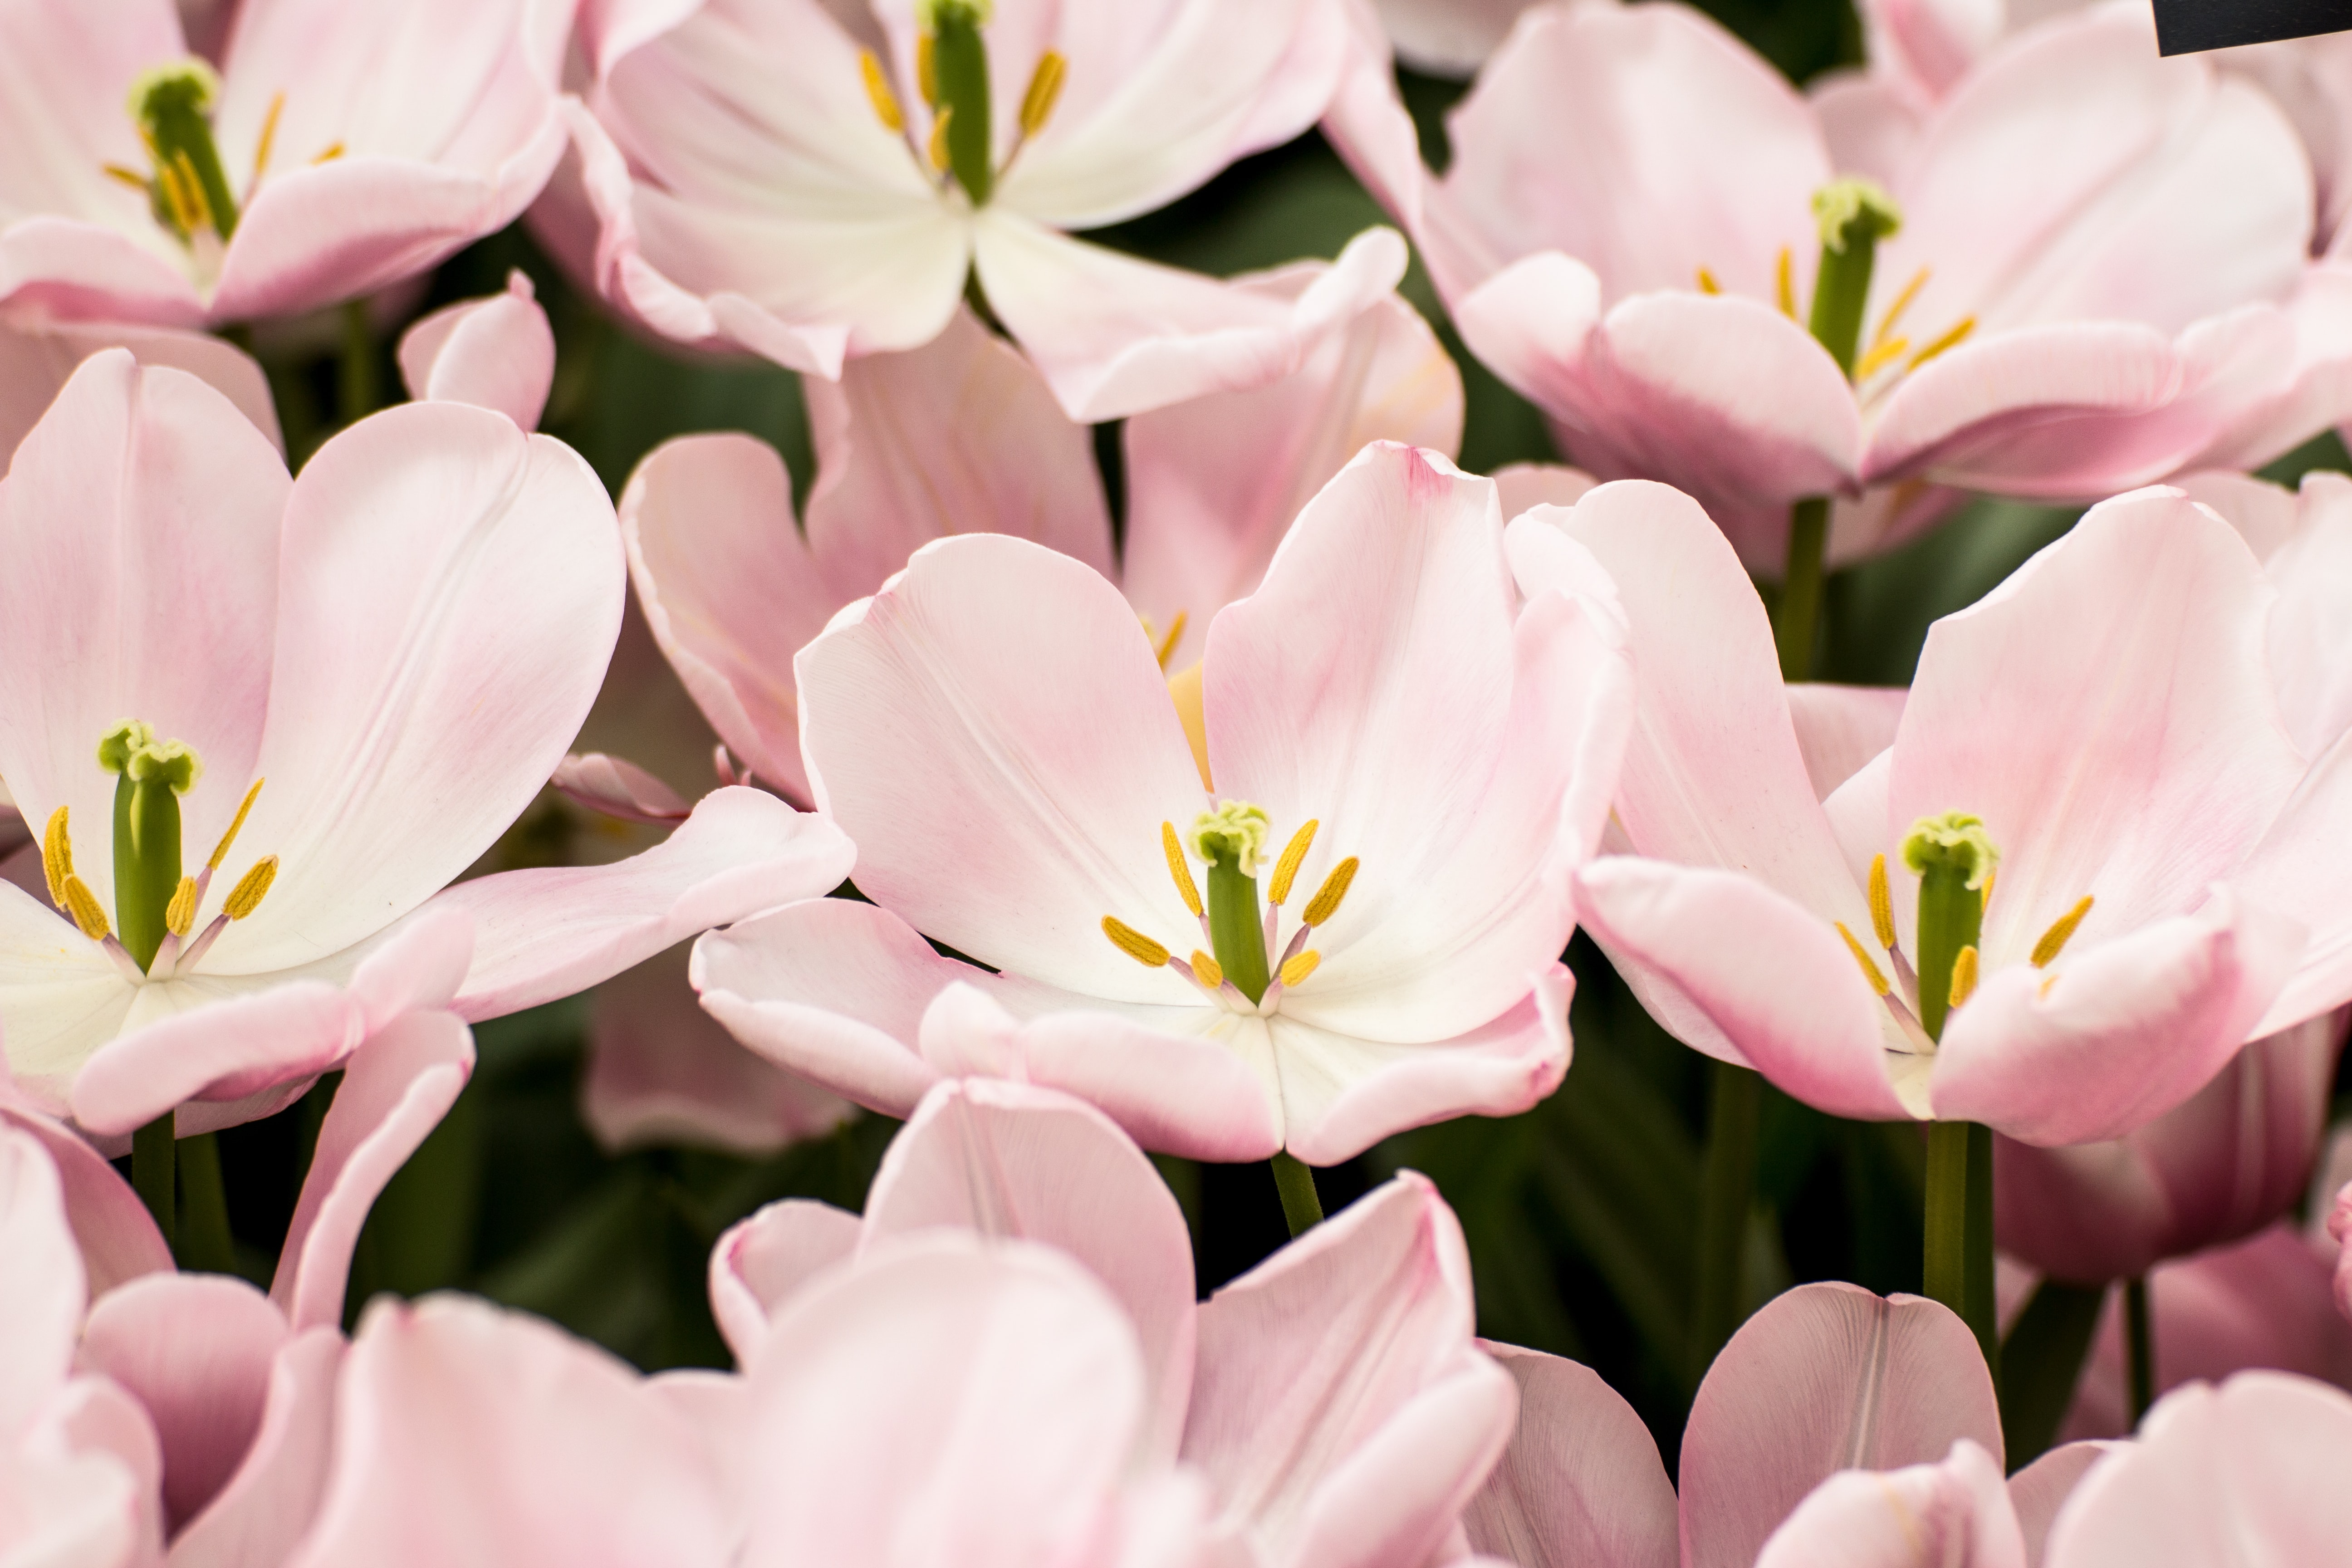 A bed of wide open pink tulips